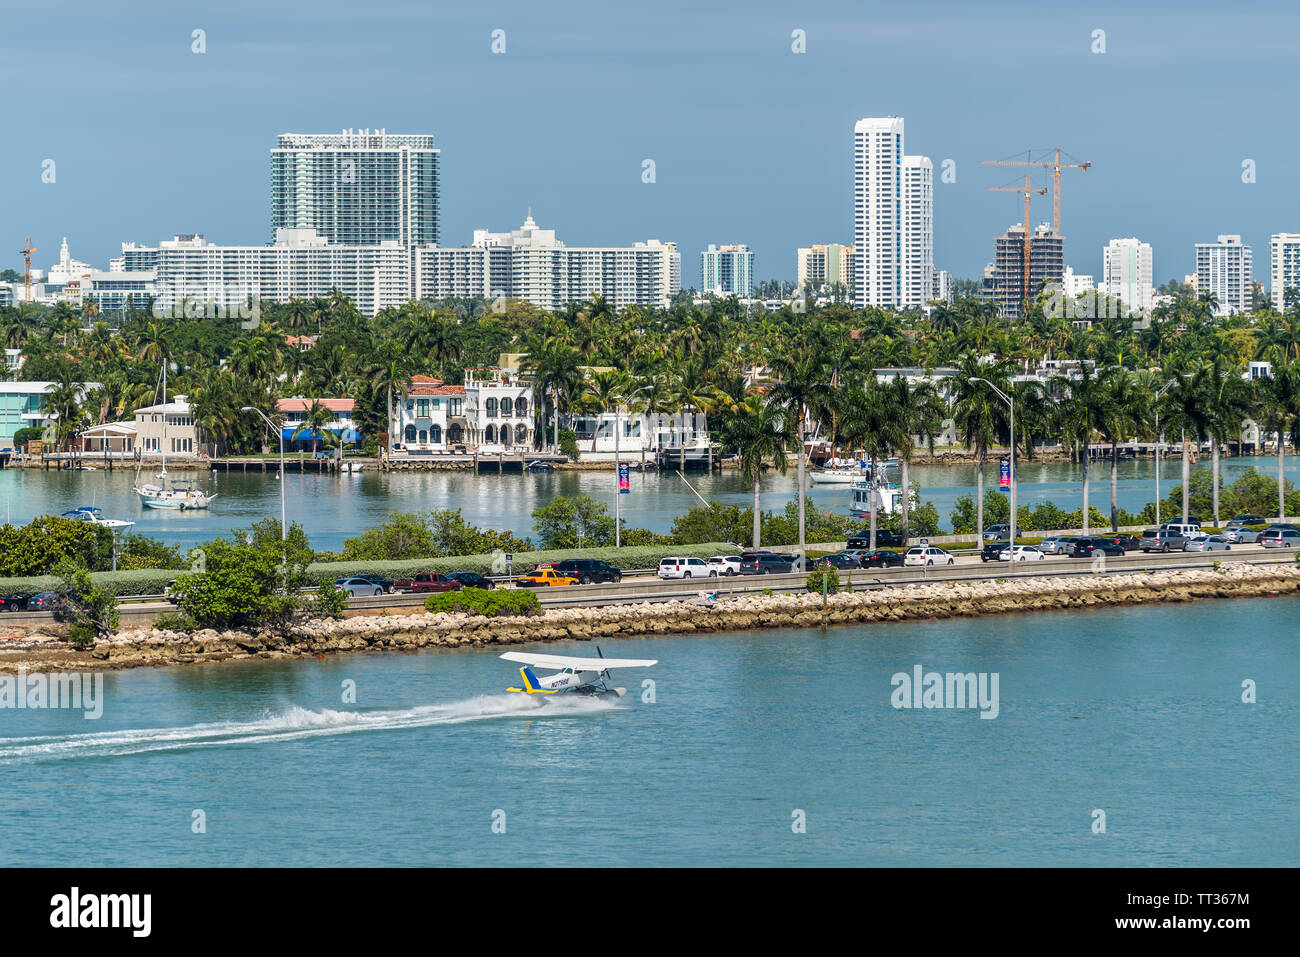 Miami, FL, United States - April 20, 2019:  View of MacArthur Causeway and Venetian Islands at Biscayne Bay in Miami, Florida, United States of Americ Stock Photo